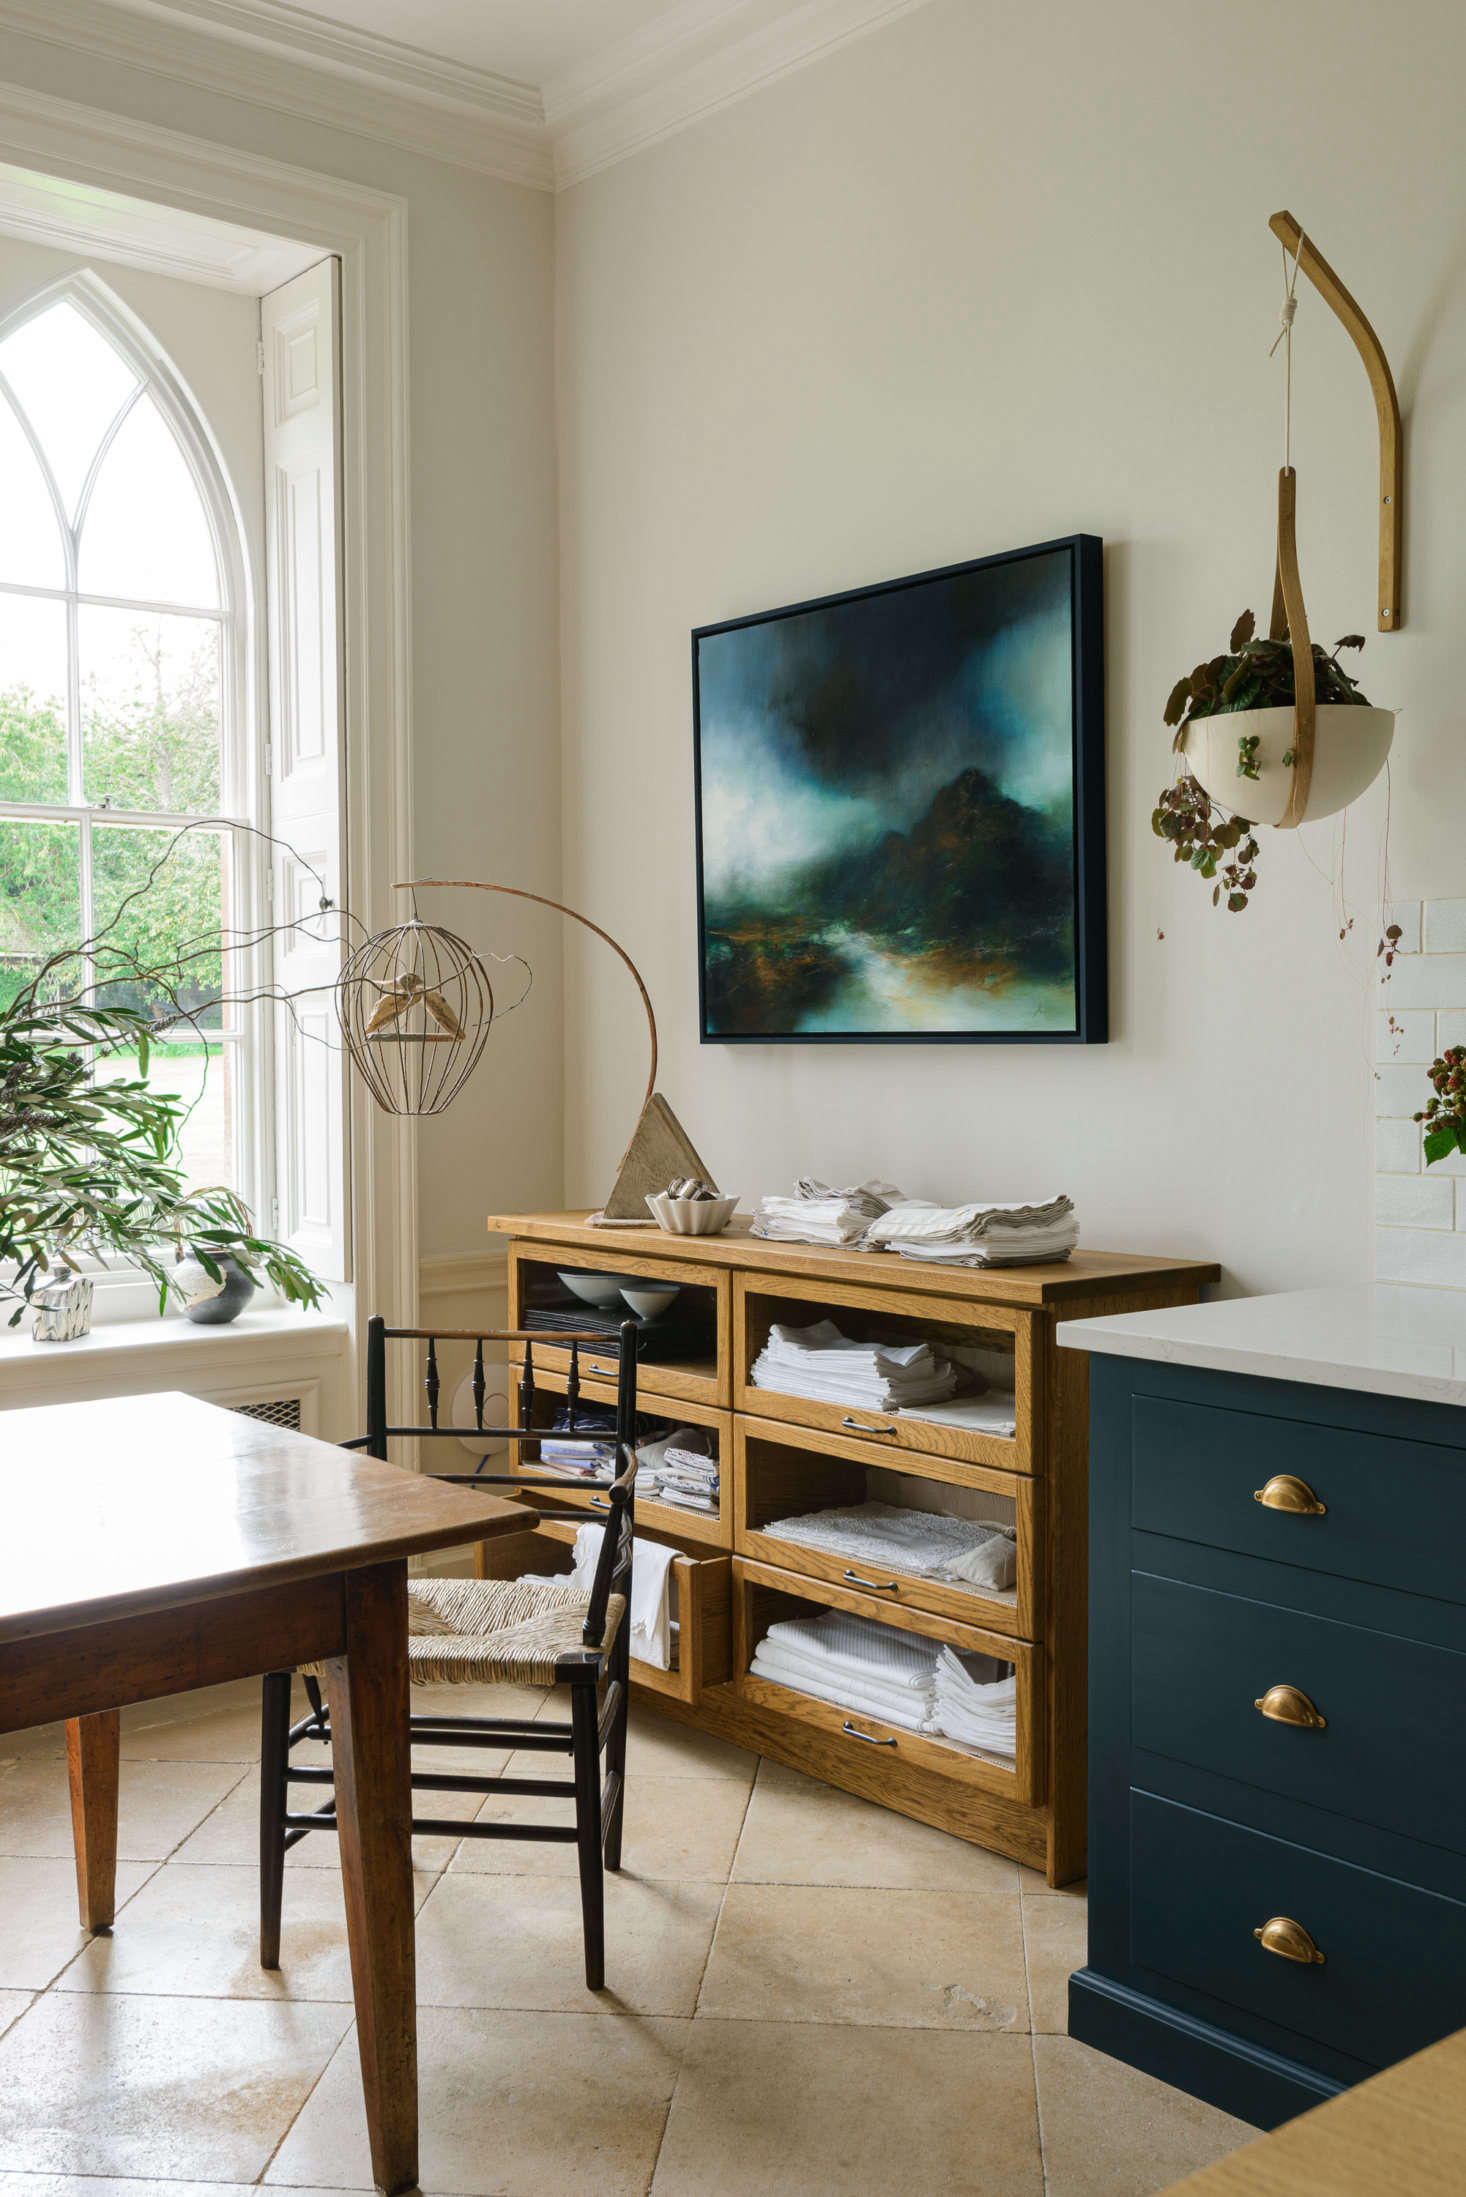 The glass sideboard, for storing kitchen linens, is from deVOL&#8